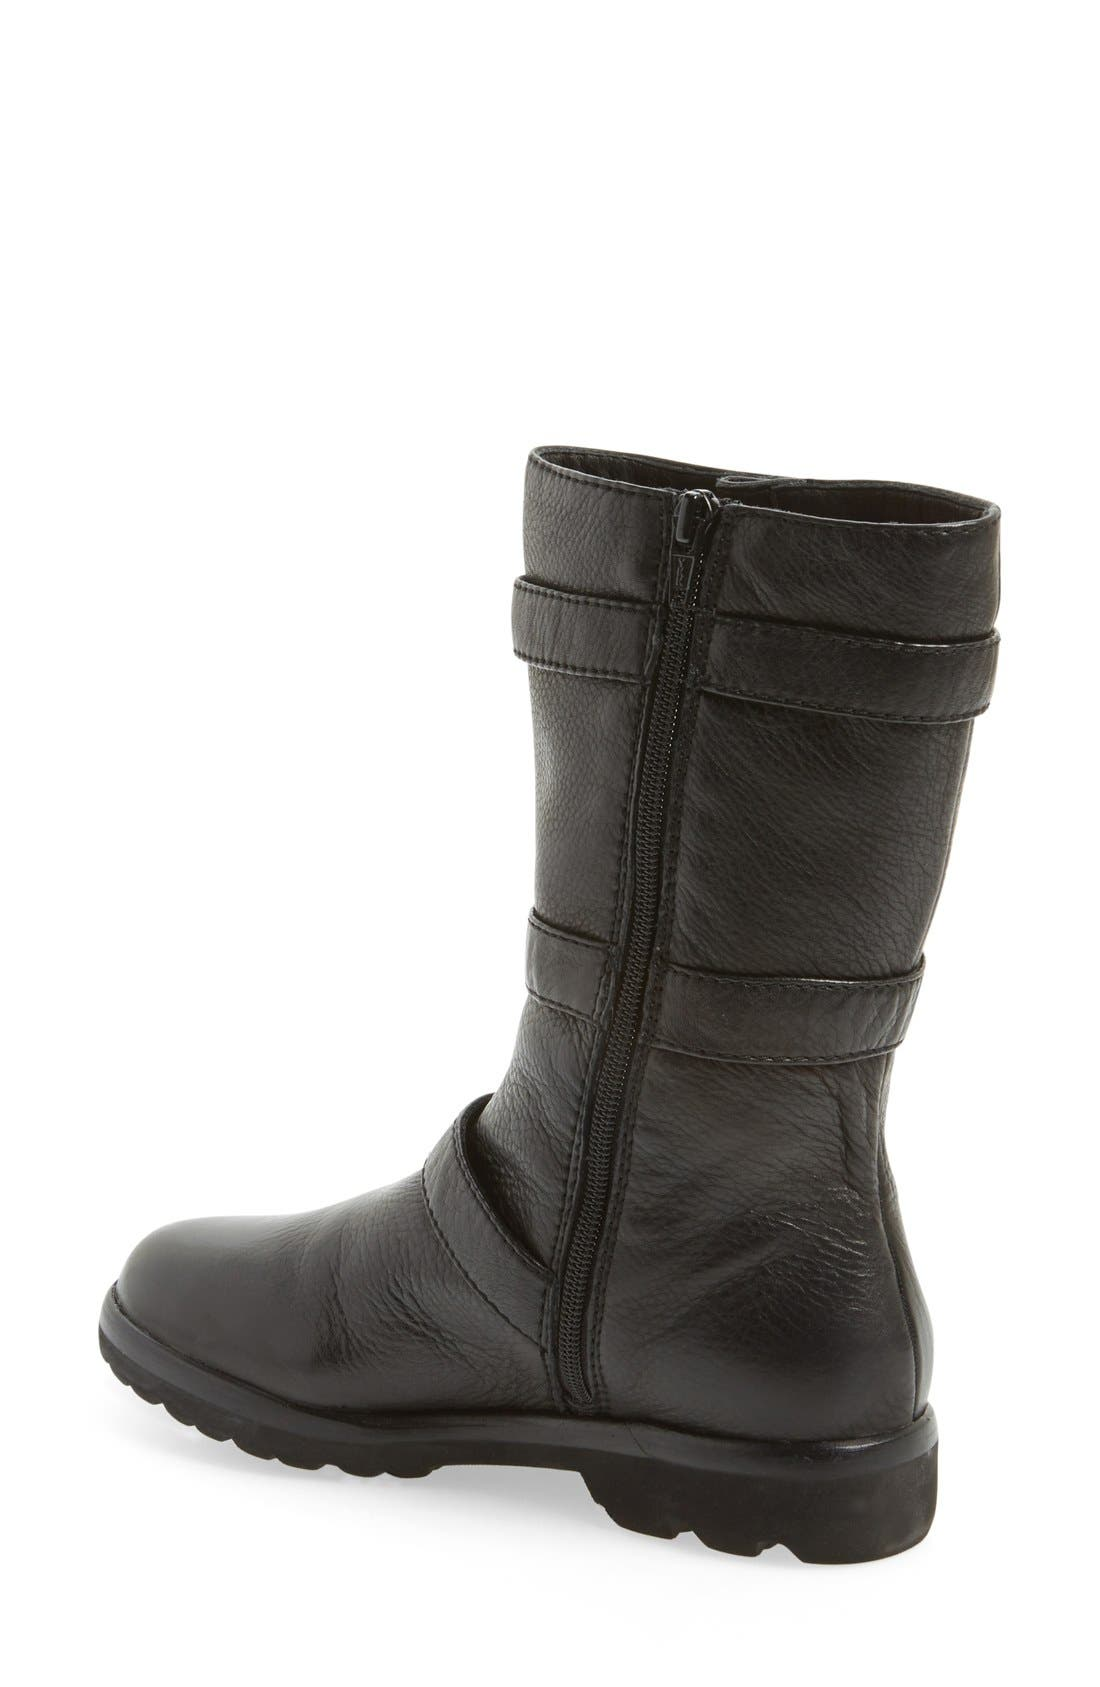 Alternate Image 2  - L'Amour Des Pieds 'Racey' Belted Mid Boot (Women)